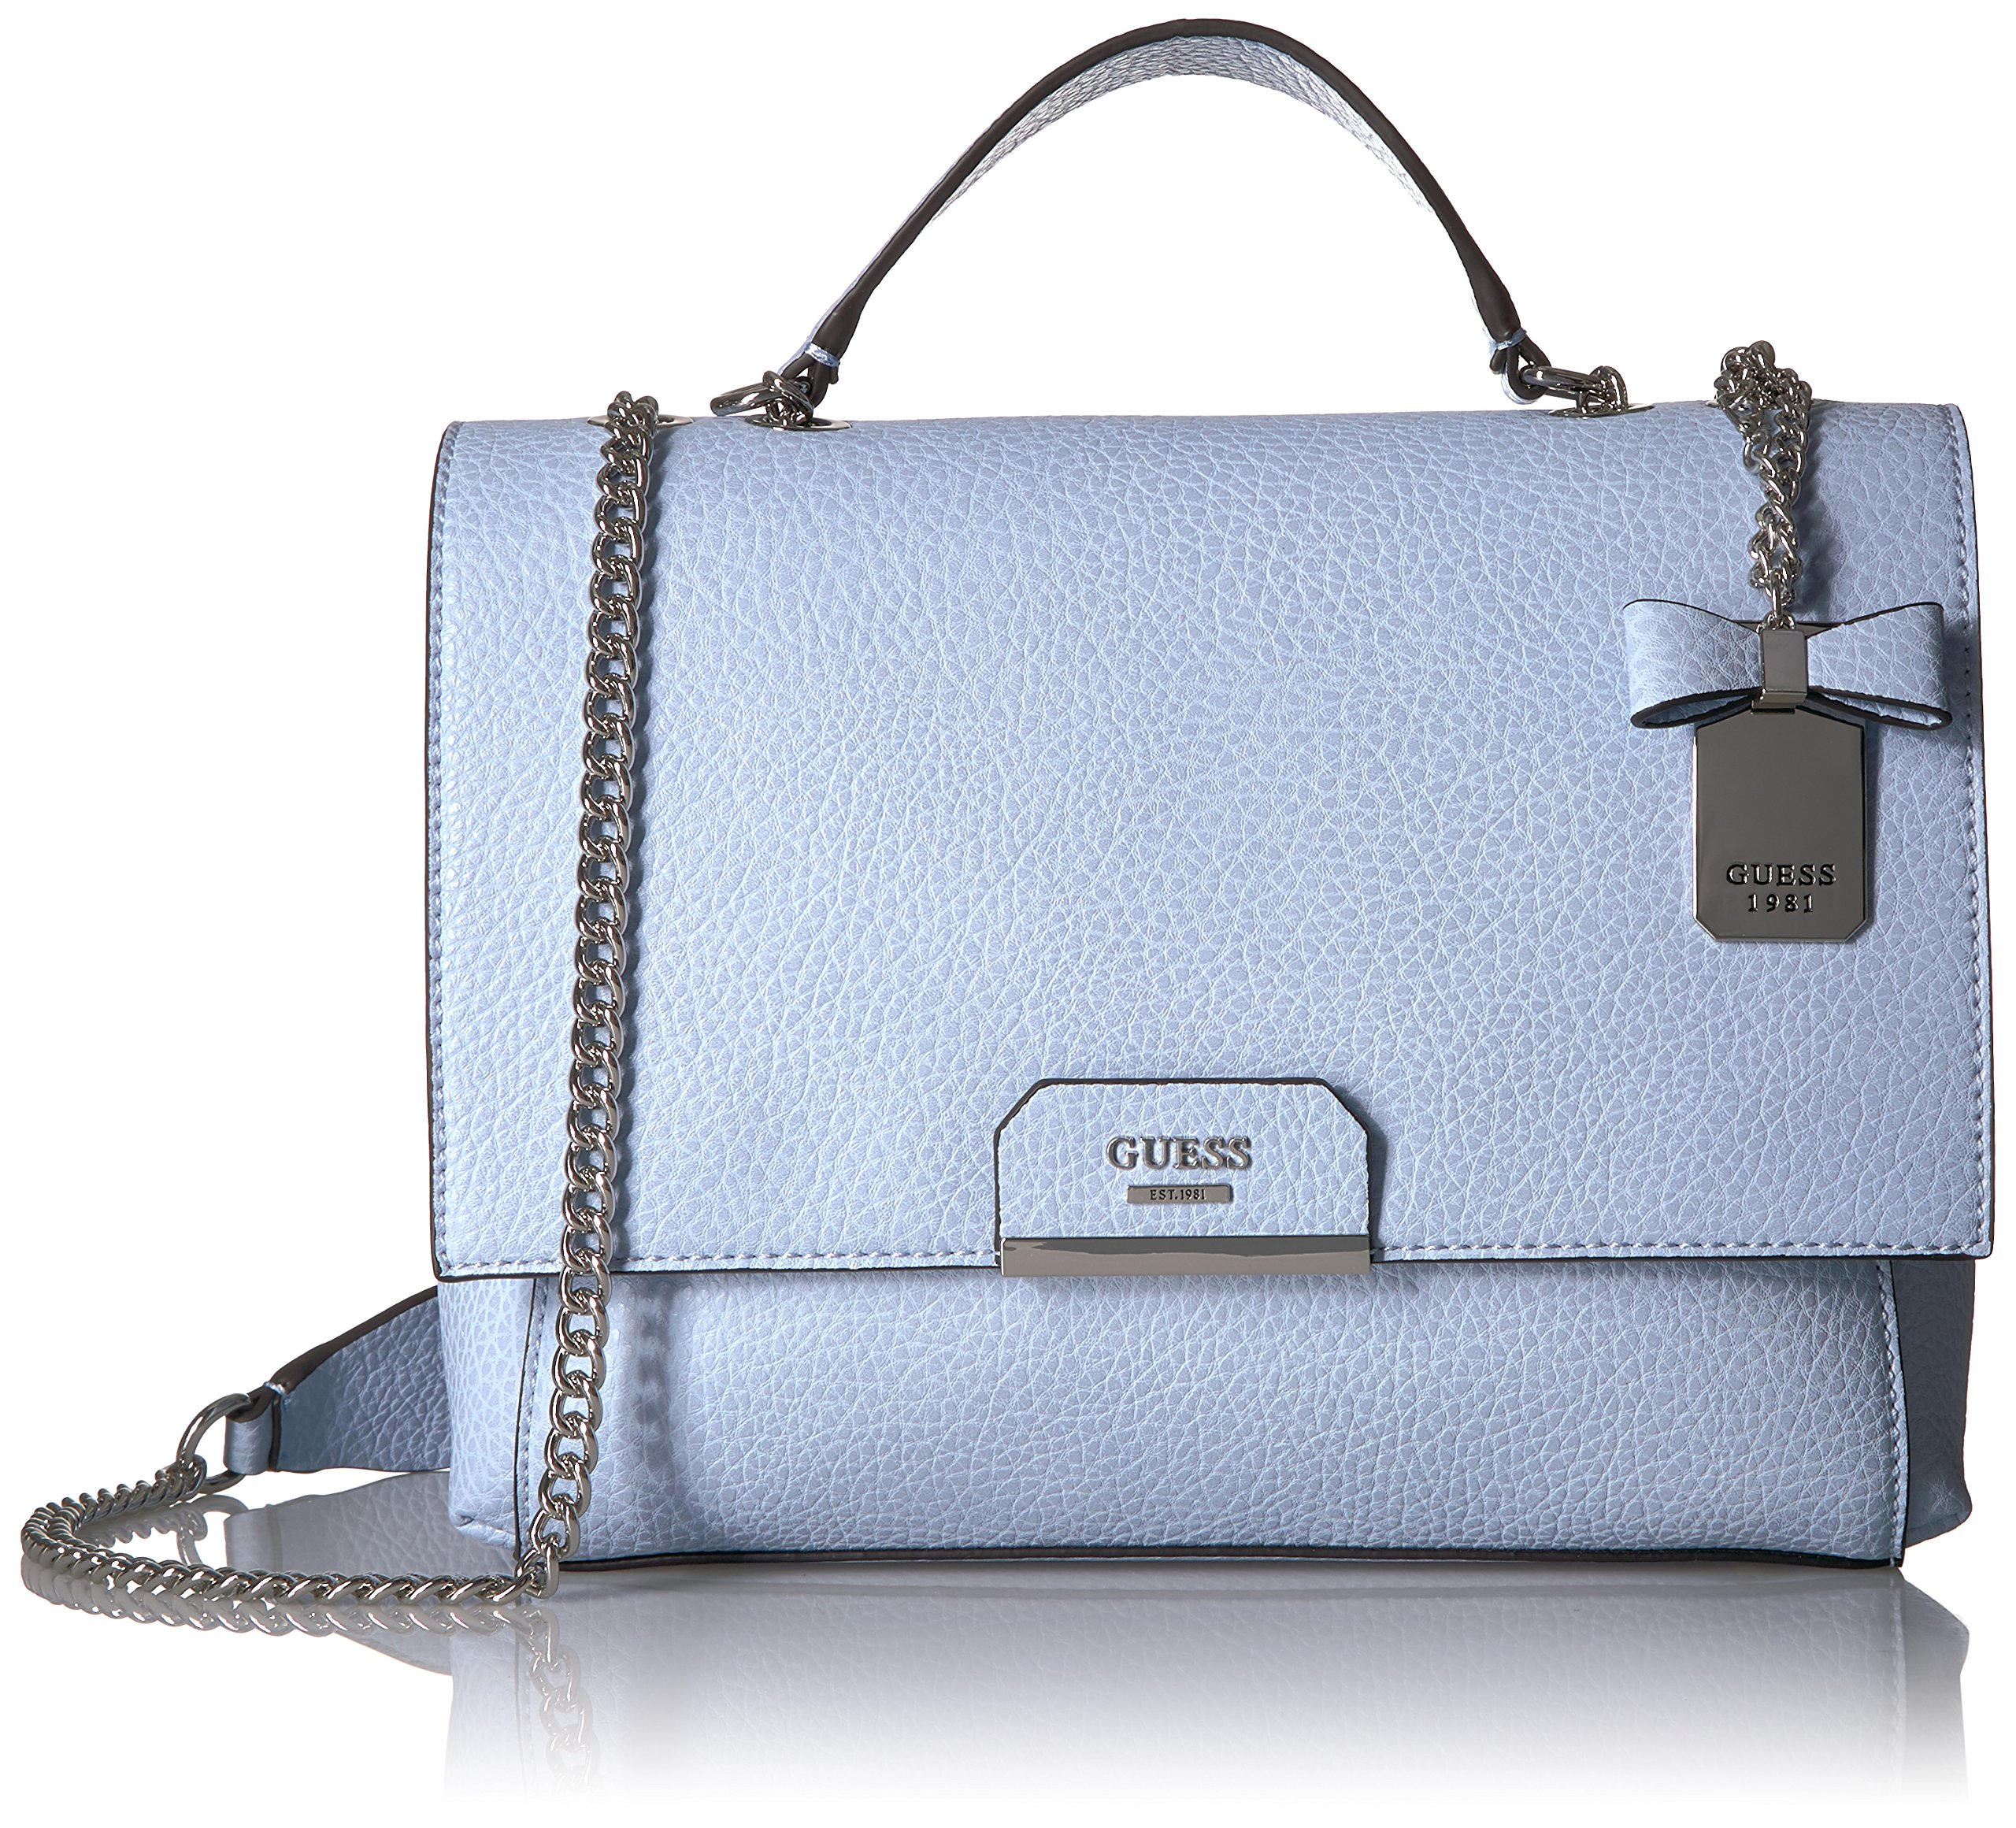 GUESS Ryann Pebble Shoulder Bag, Sky